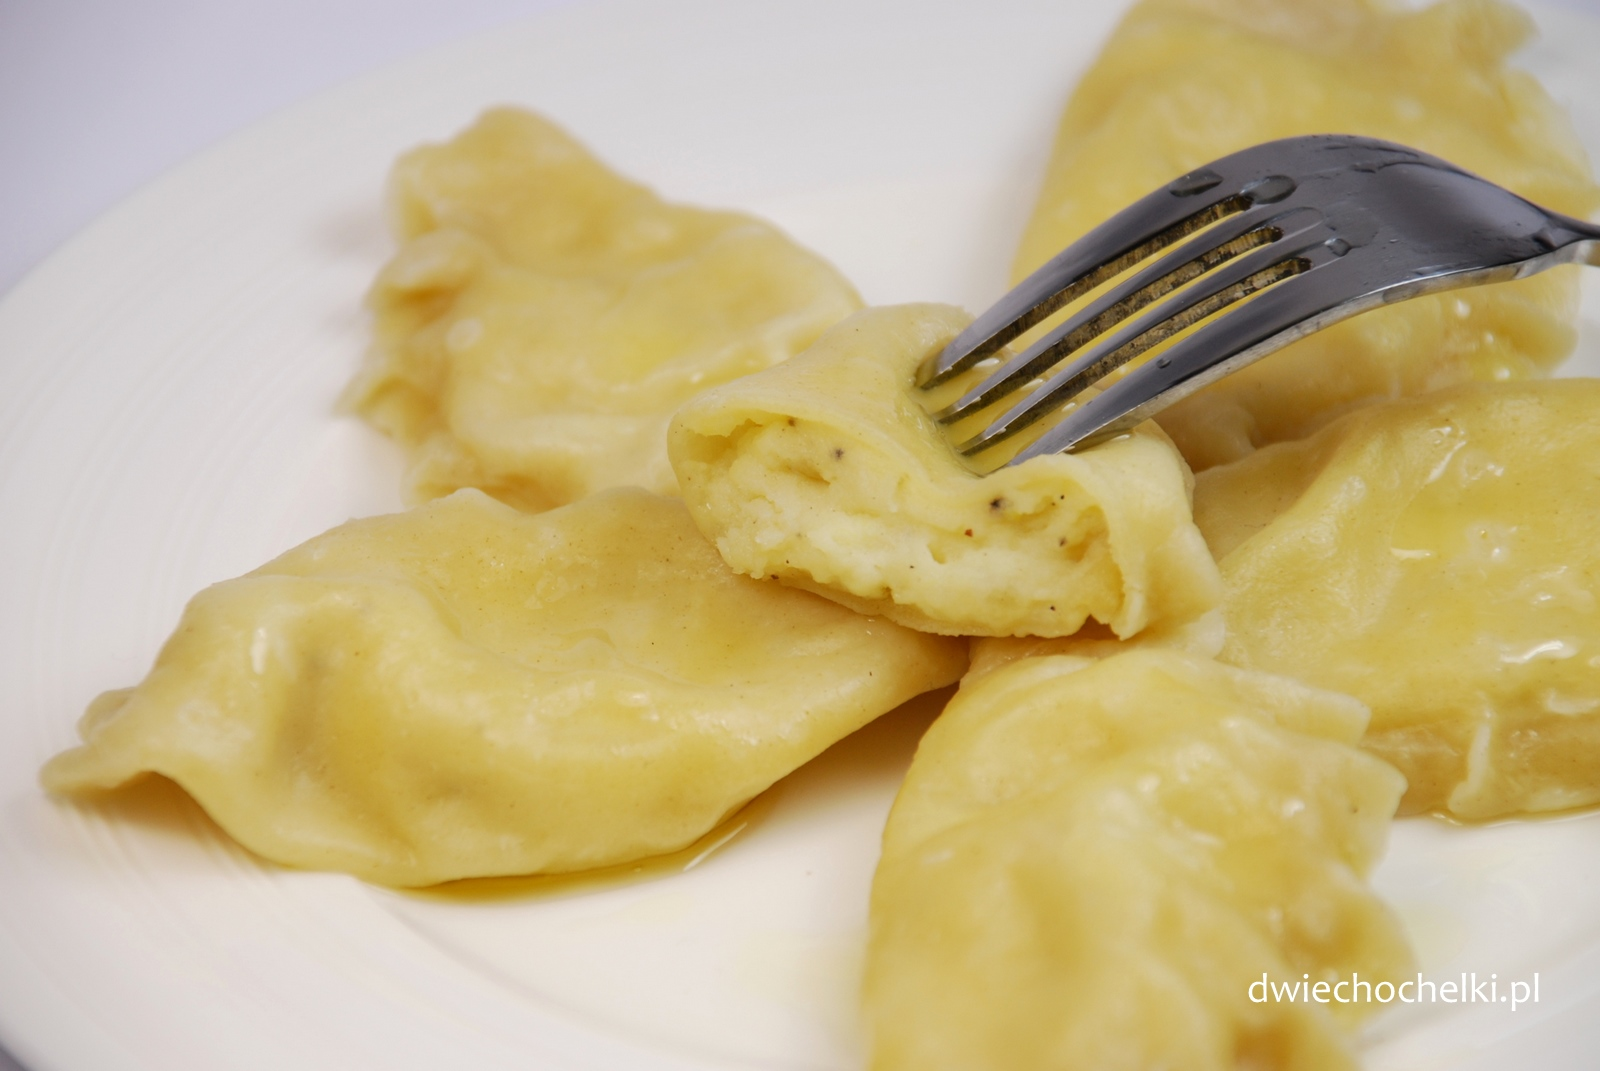 ... pierogi pierogi with potato filling and brown butter pierogi